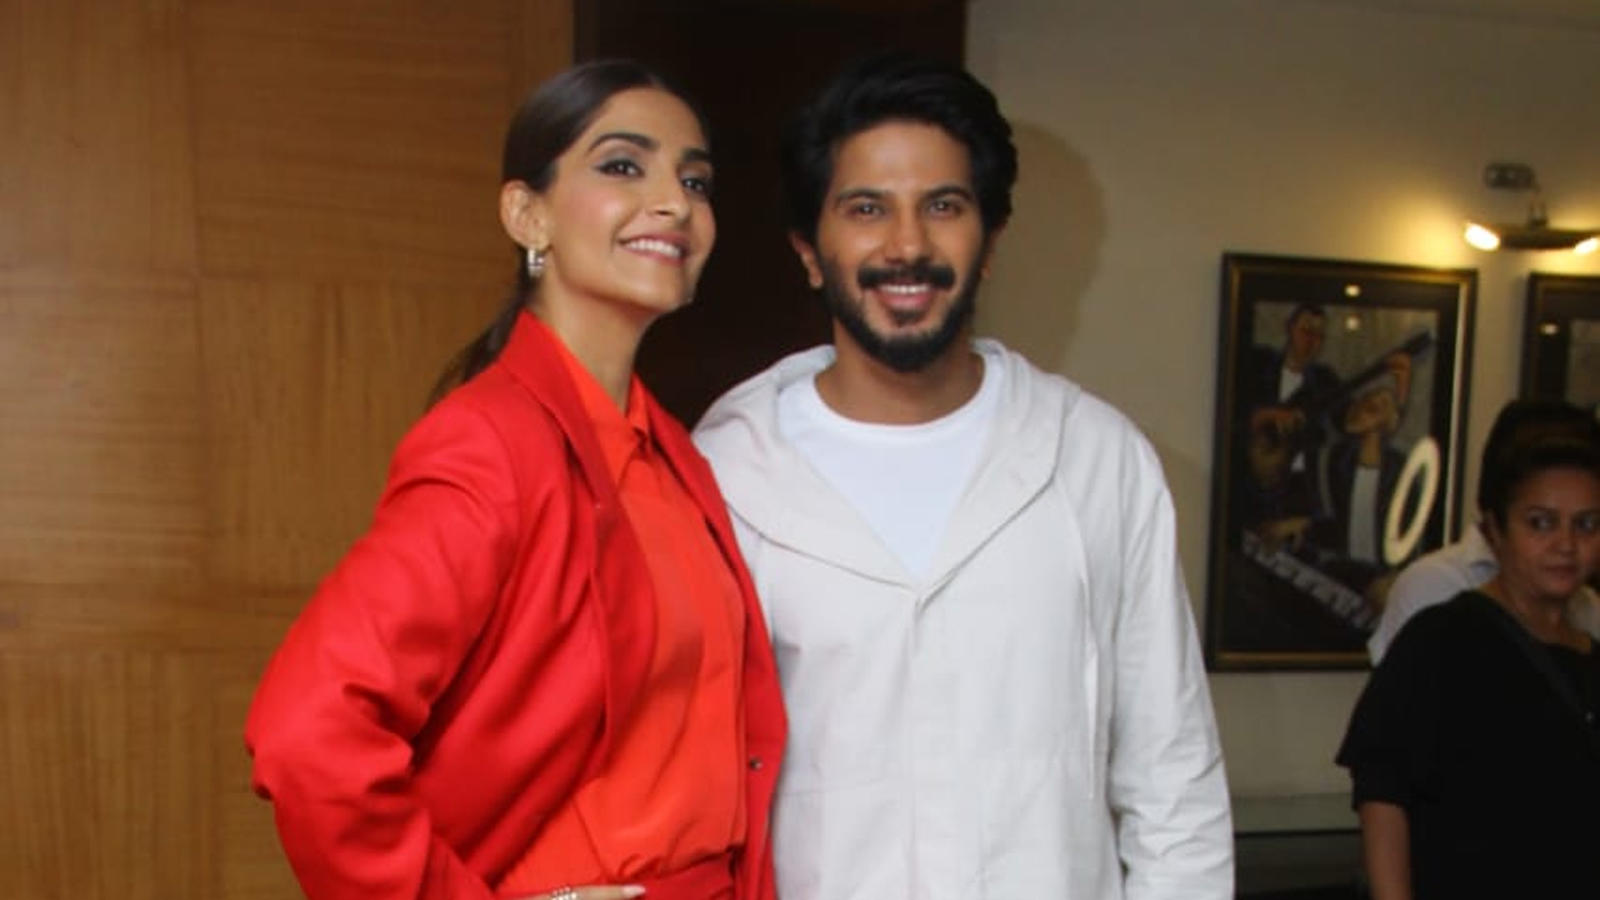 Sonam Kapoor, Dulquer Salmaan spotted in Mumbai for 'The Zoya Factor' promotions